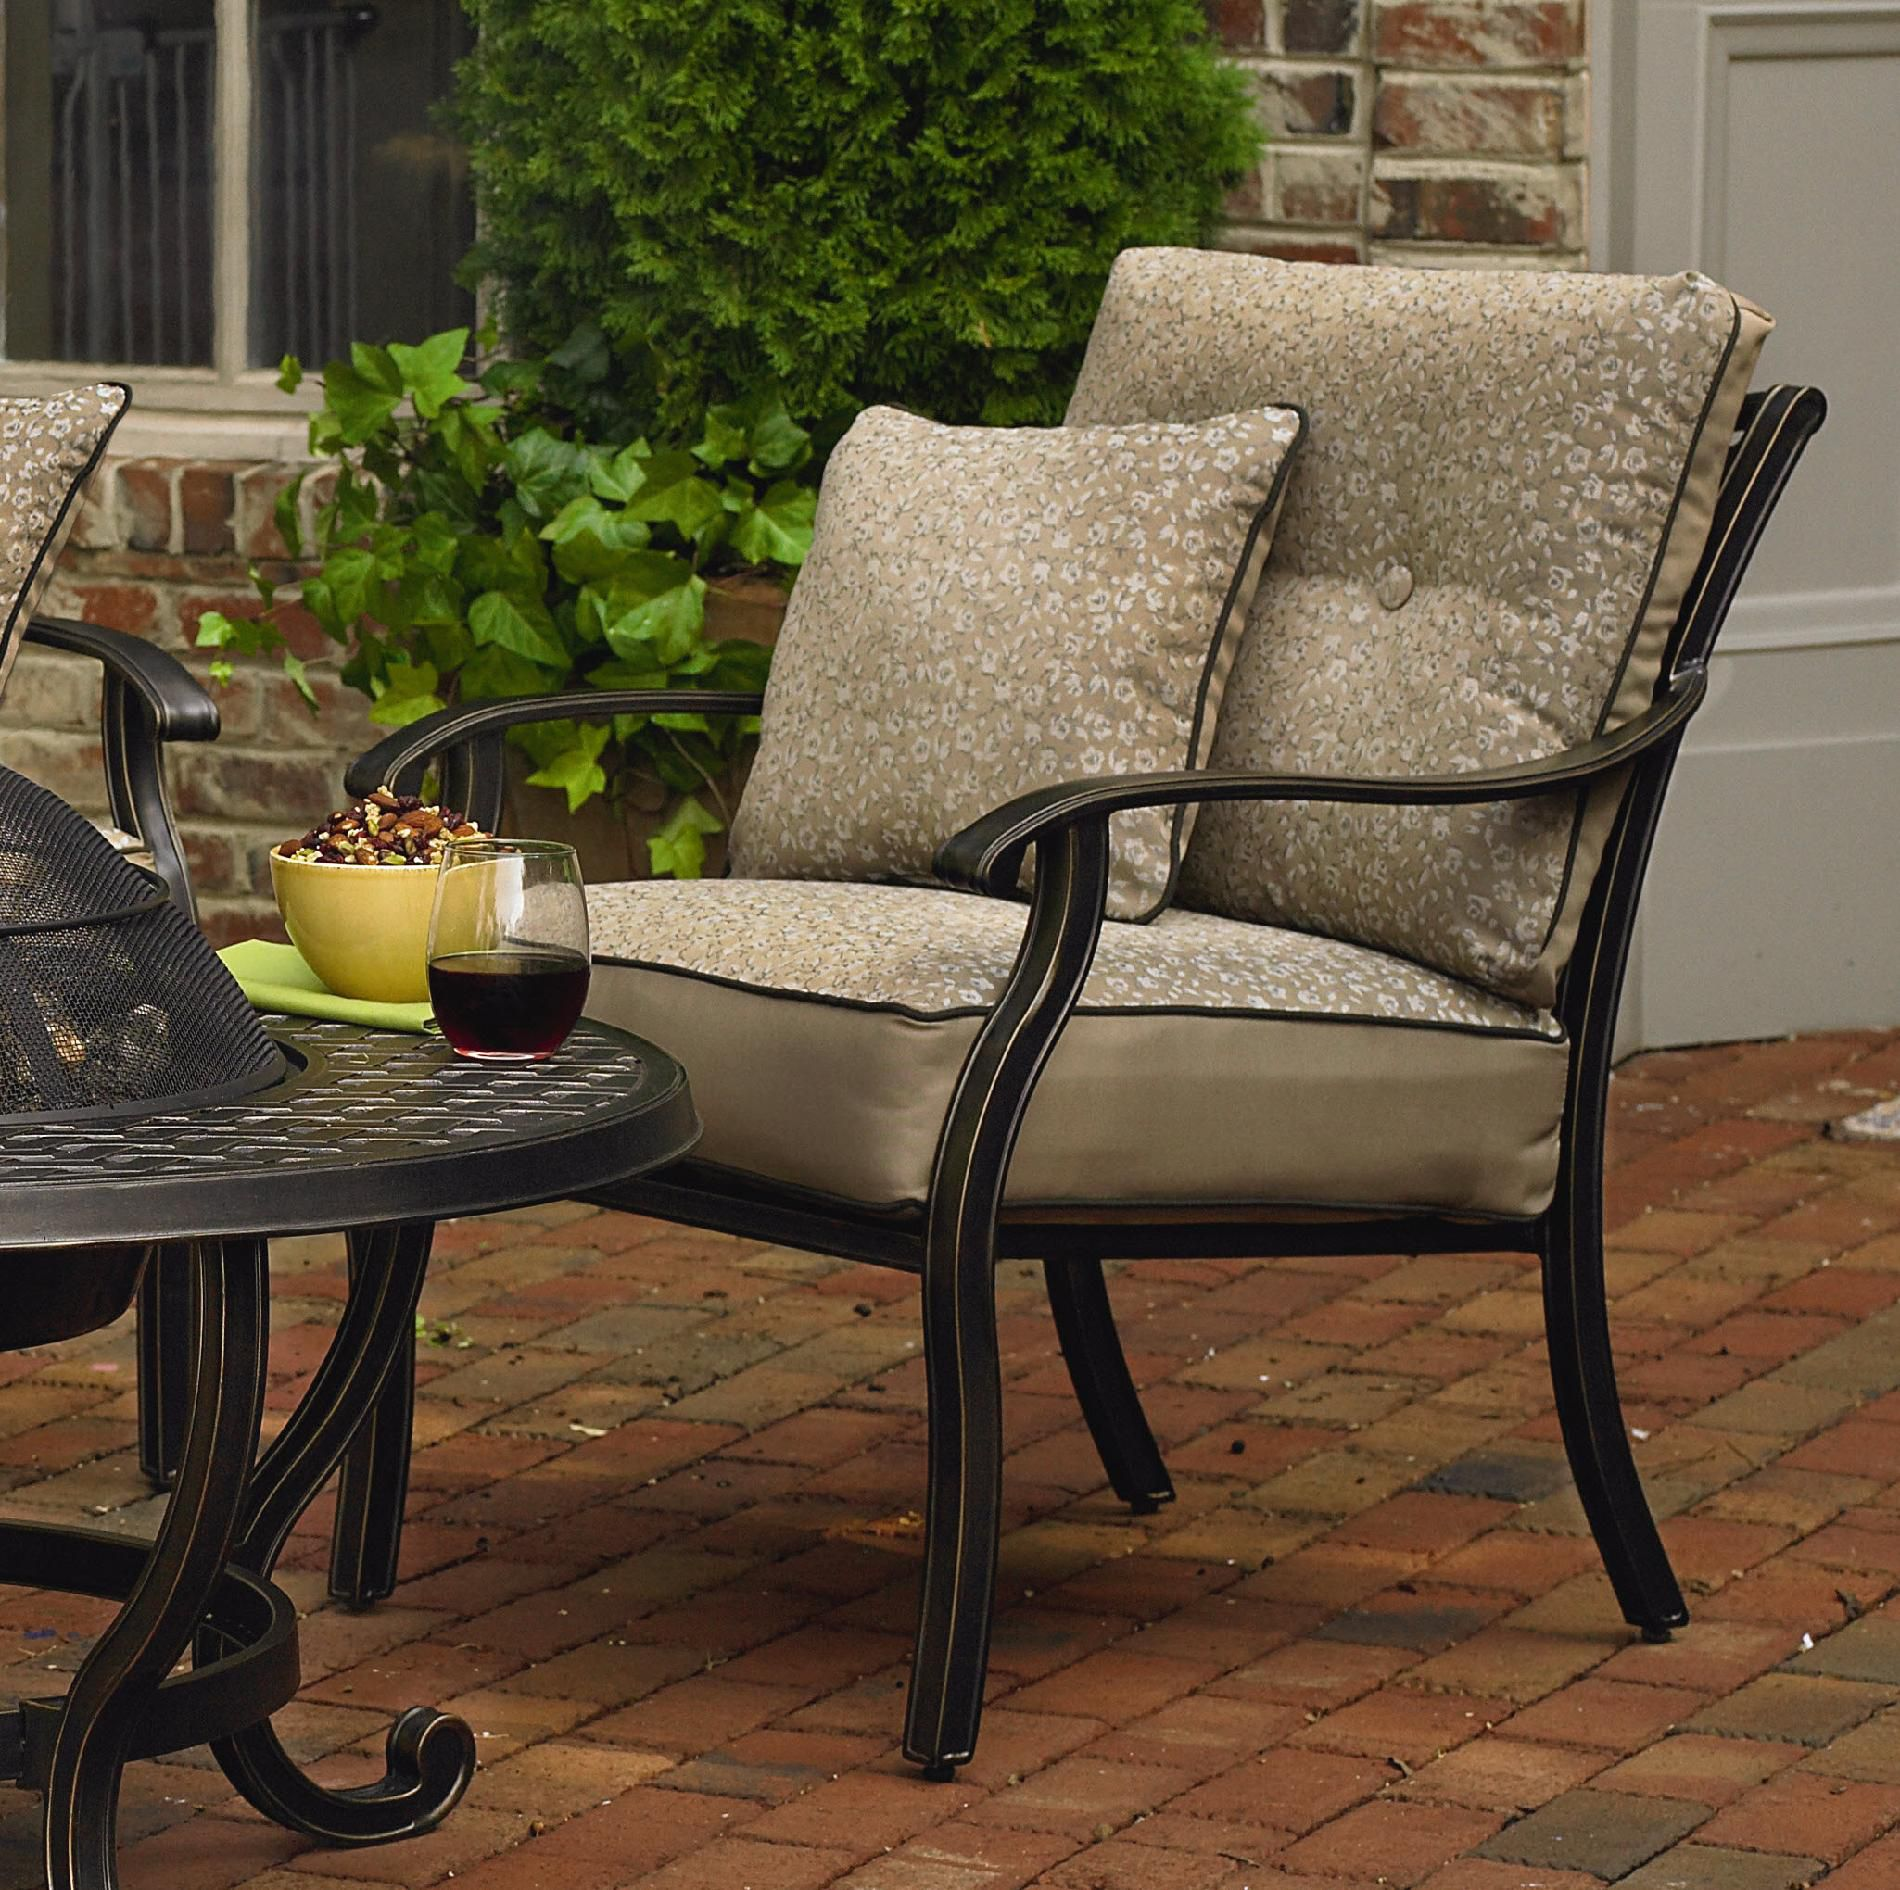 Agio Fair Oaks 4pc Seating Set - Limited availability